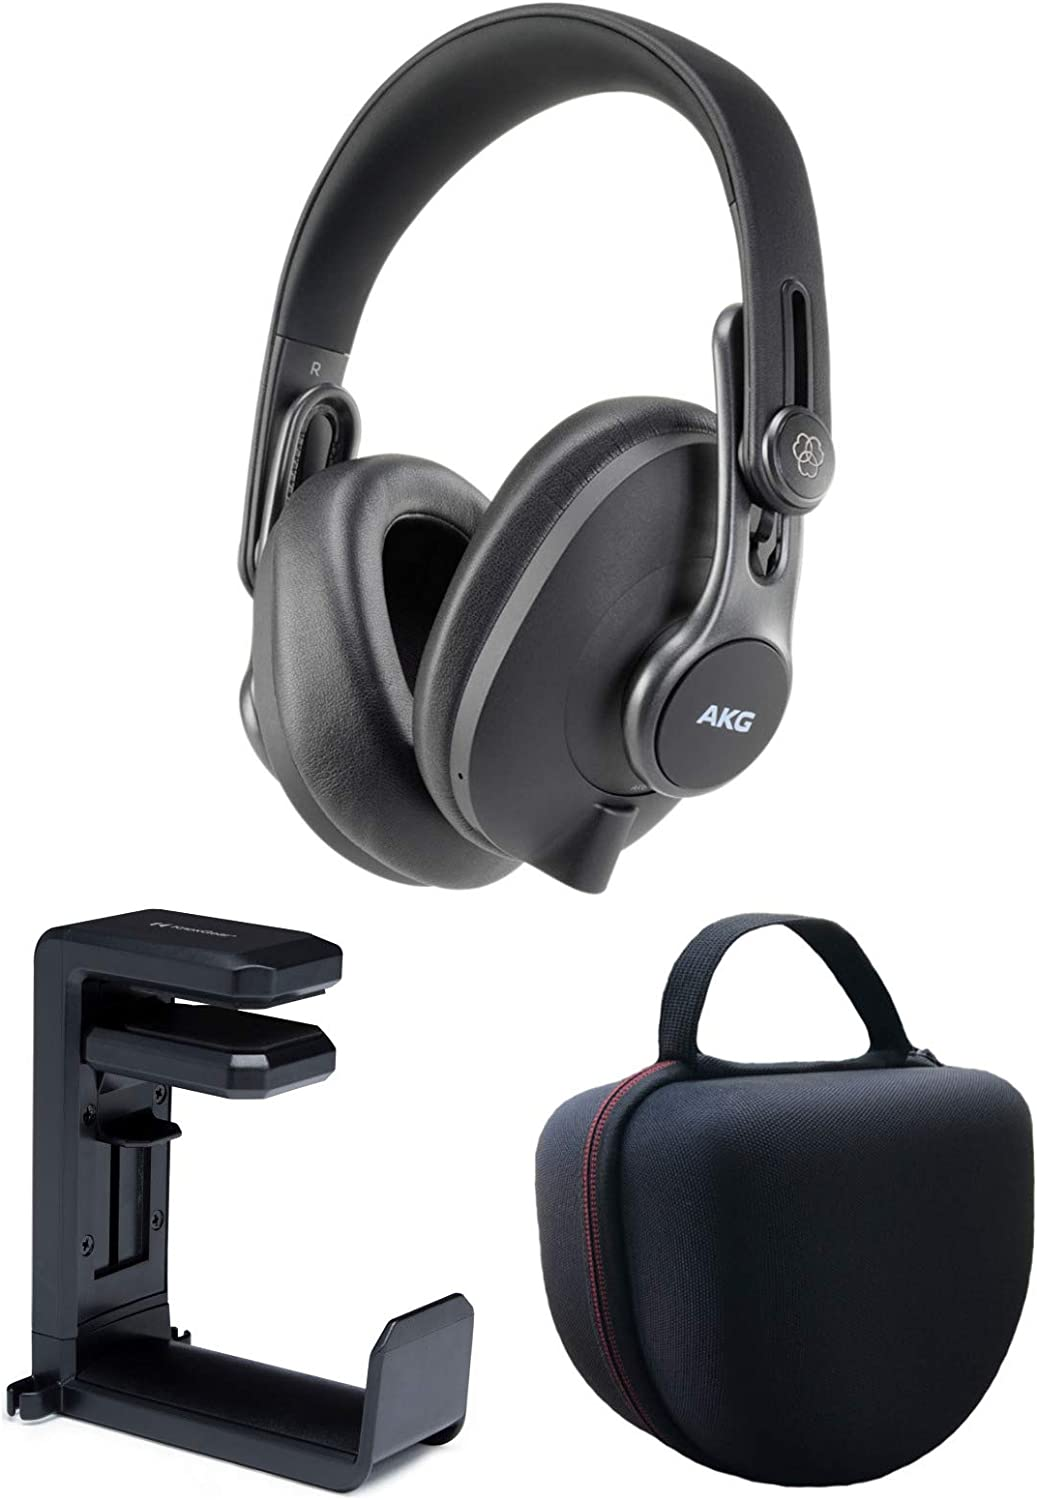 AKG Max 56% OFF K371-BT Bluetooth Closed-Back Foldable Headphones wit Special Campaign Studio